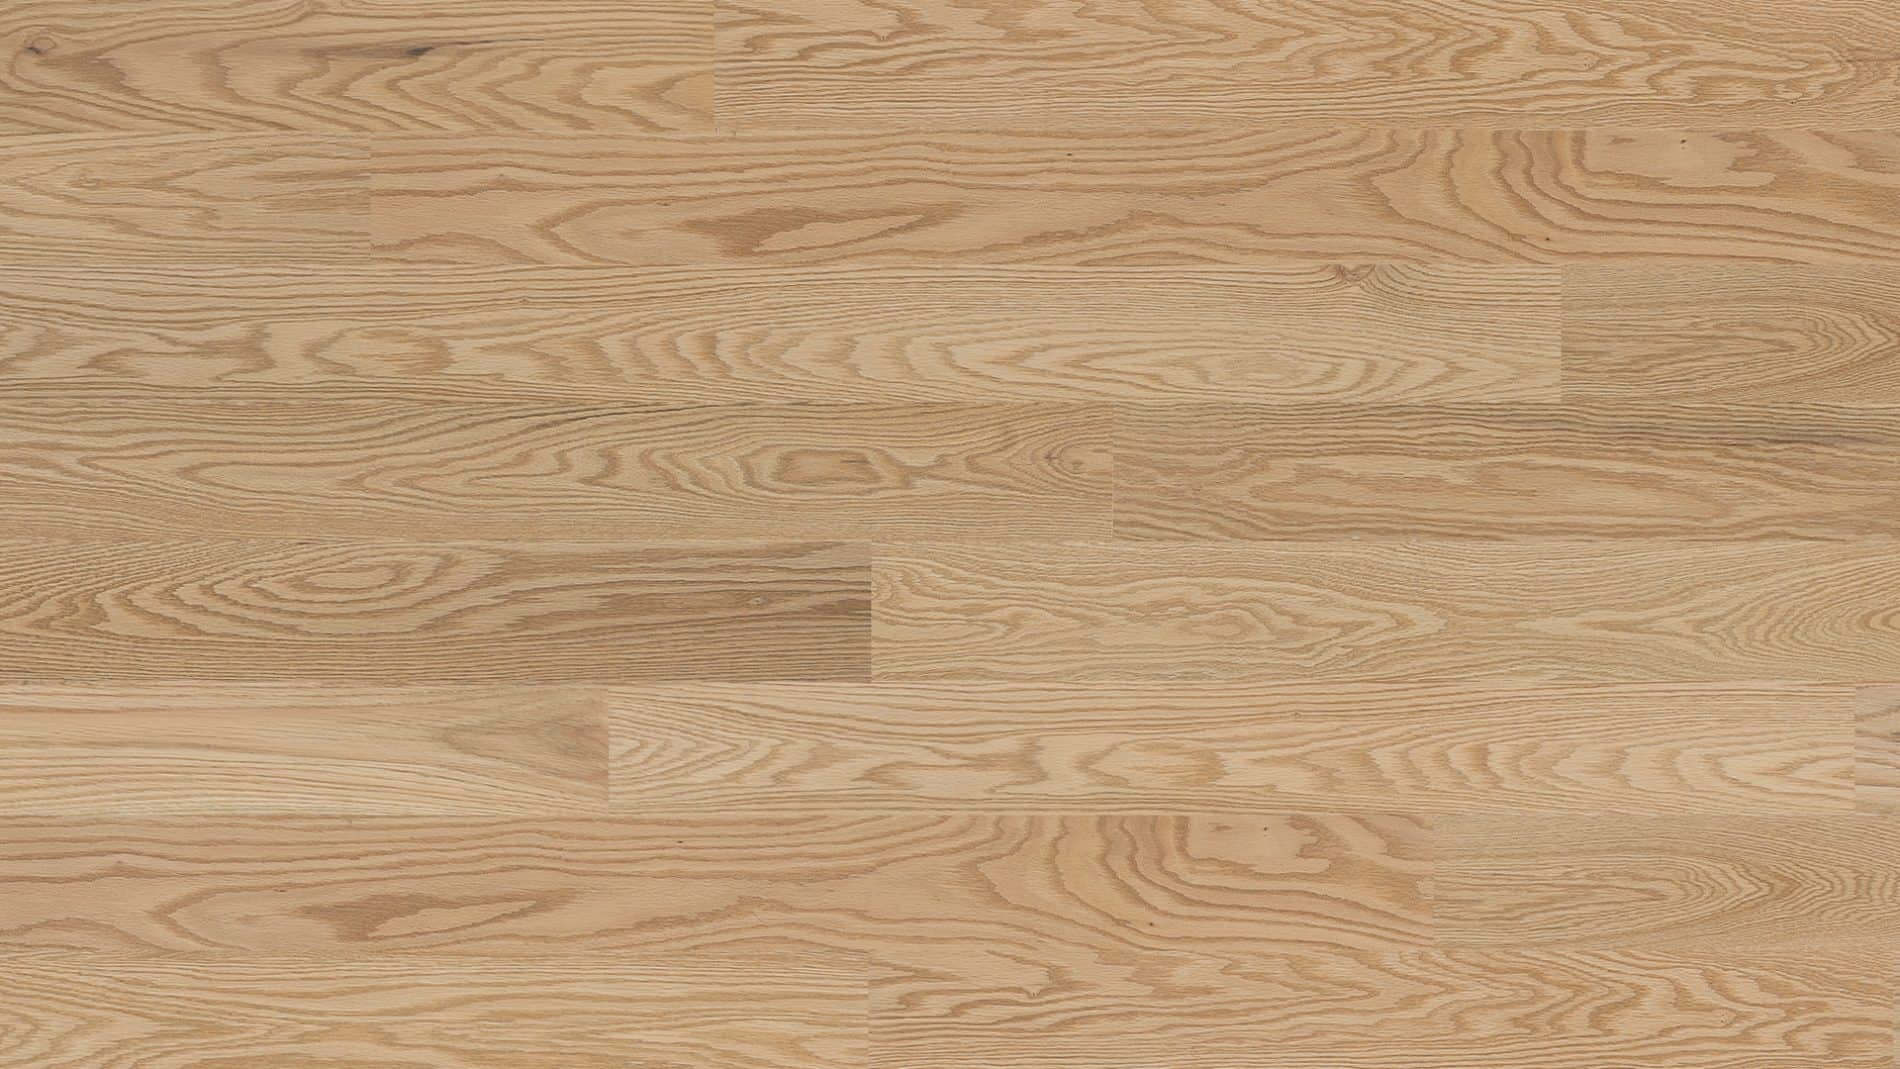 light hardwood floors texture. LIGHT HARDWOOD FLOORS Light Hardwood Floors Texture O